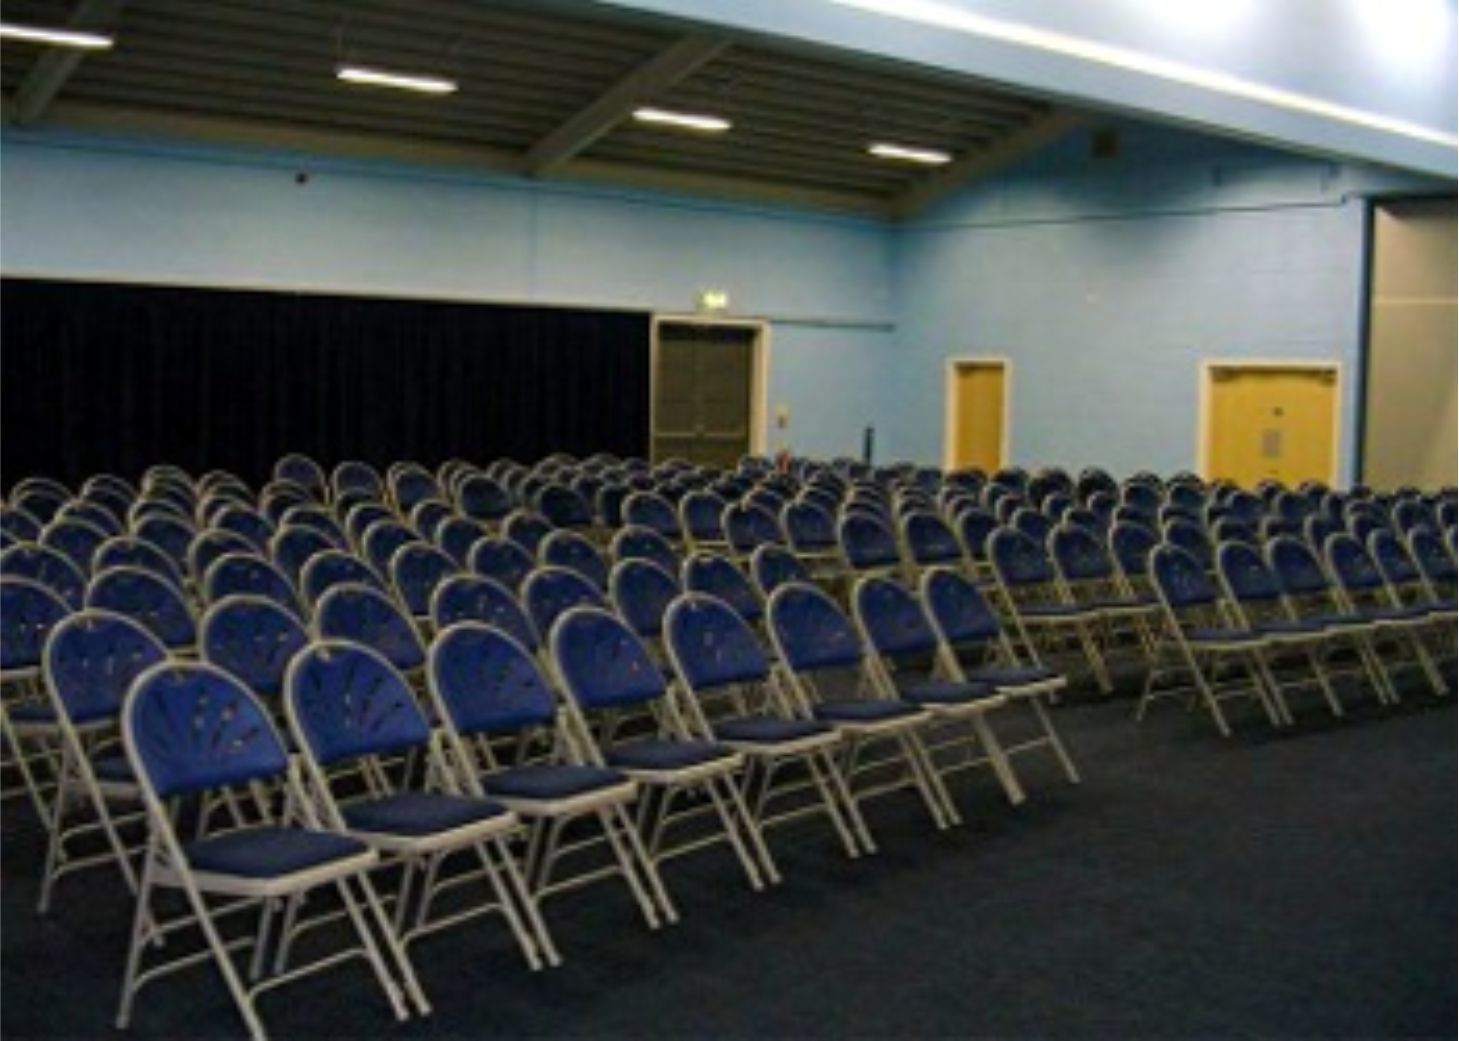 Placeholder Selsey Centre Arena